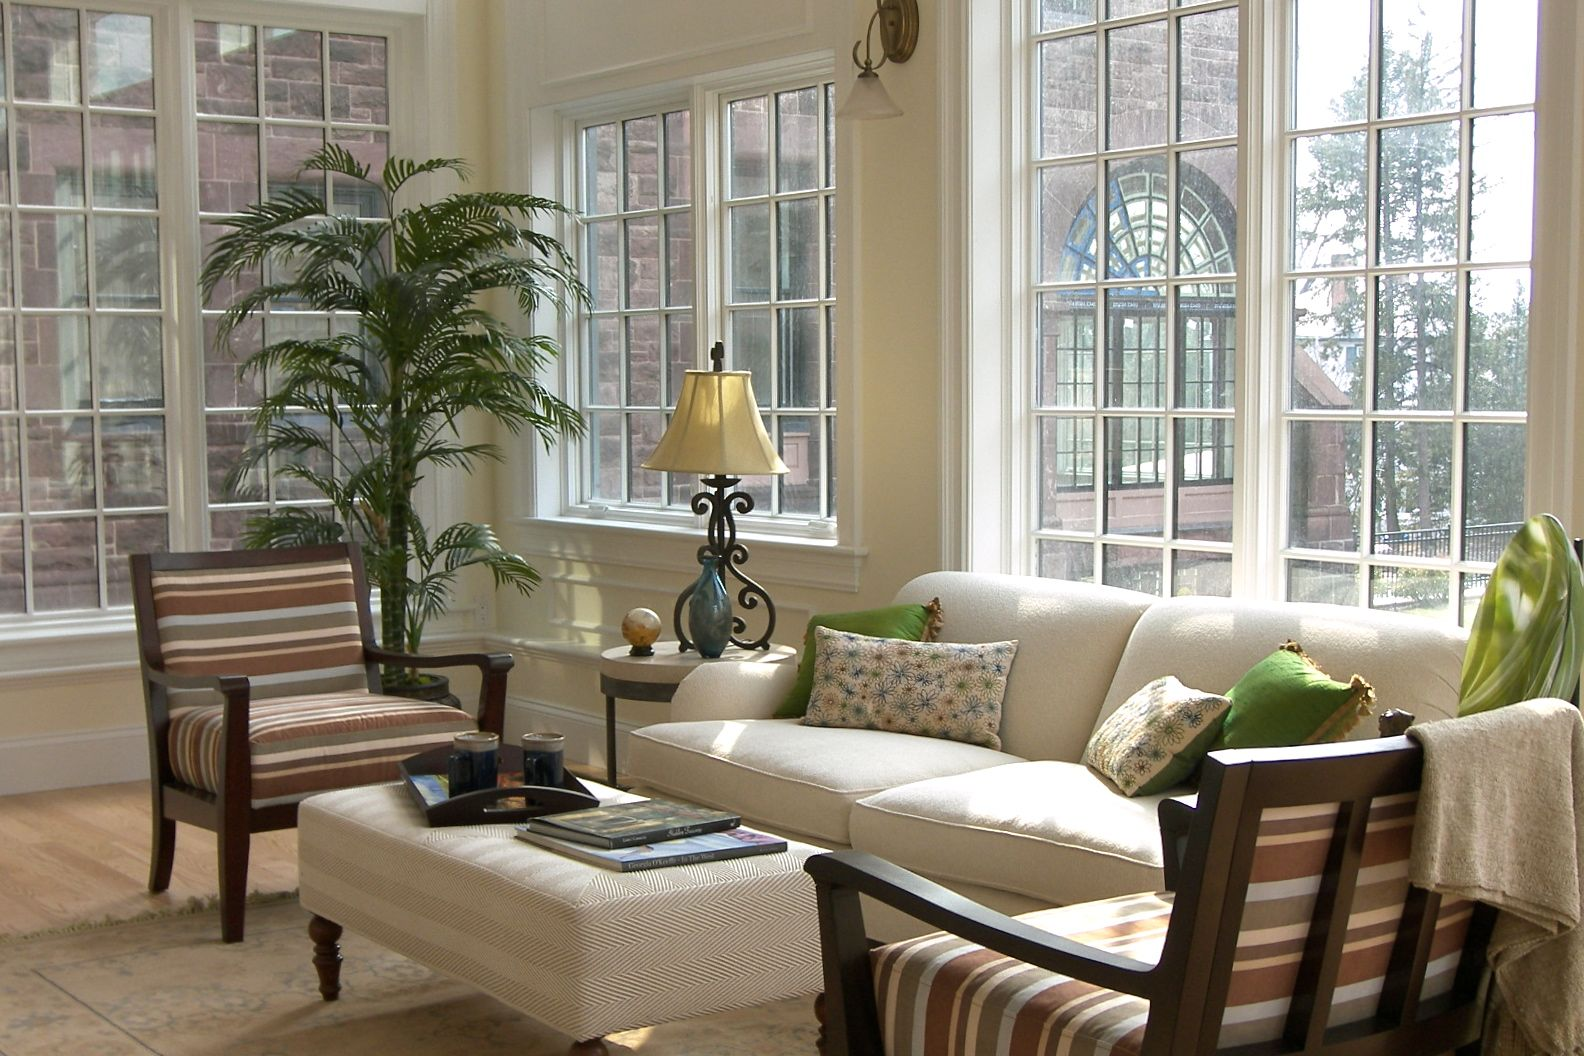 Image of: sunroom design ideas